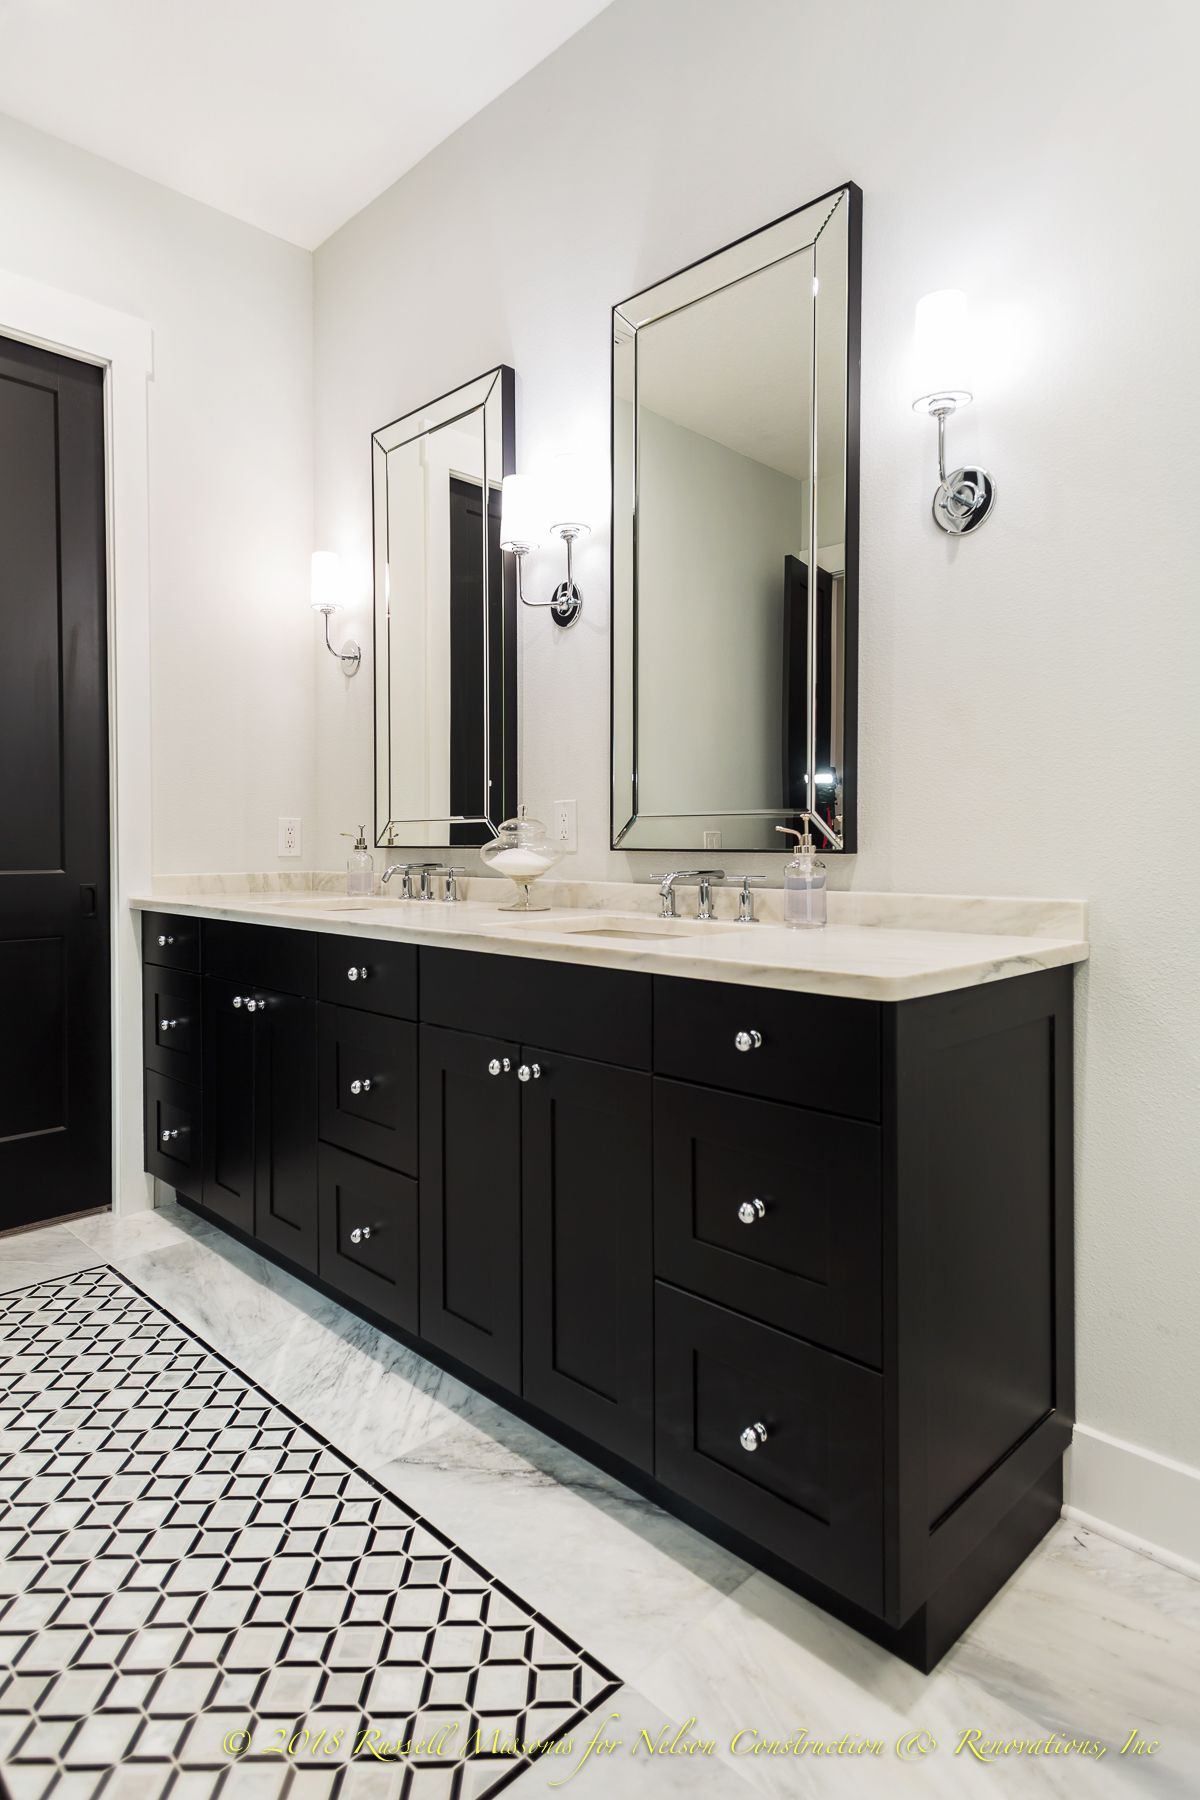 Bathroom Ideas For Your Custom Home For The Home Bathroom